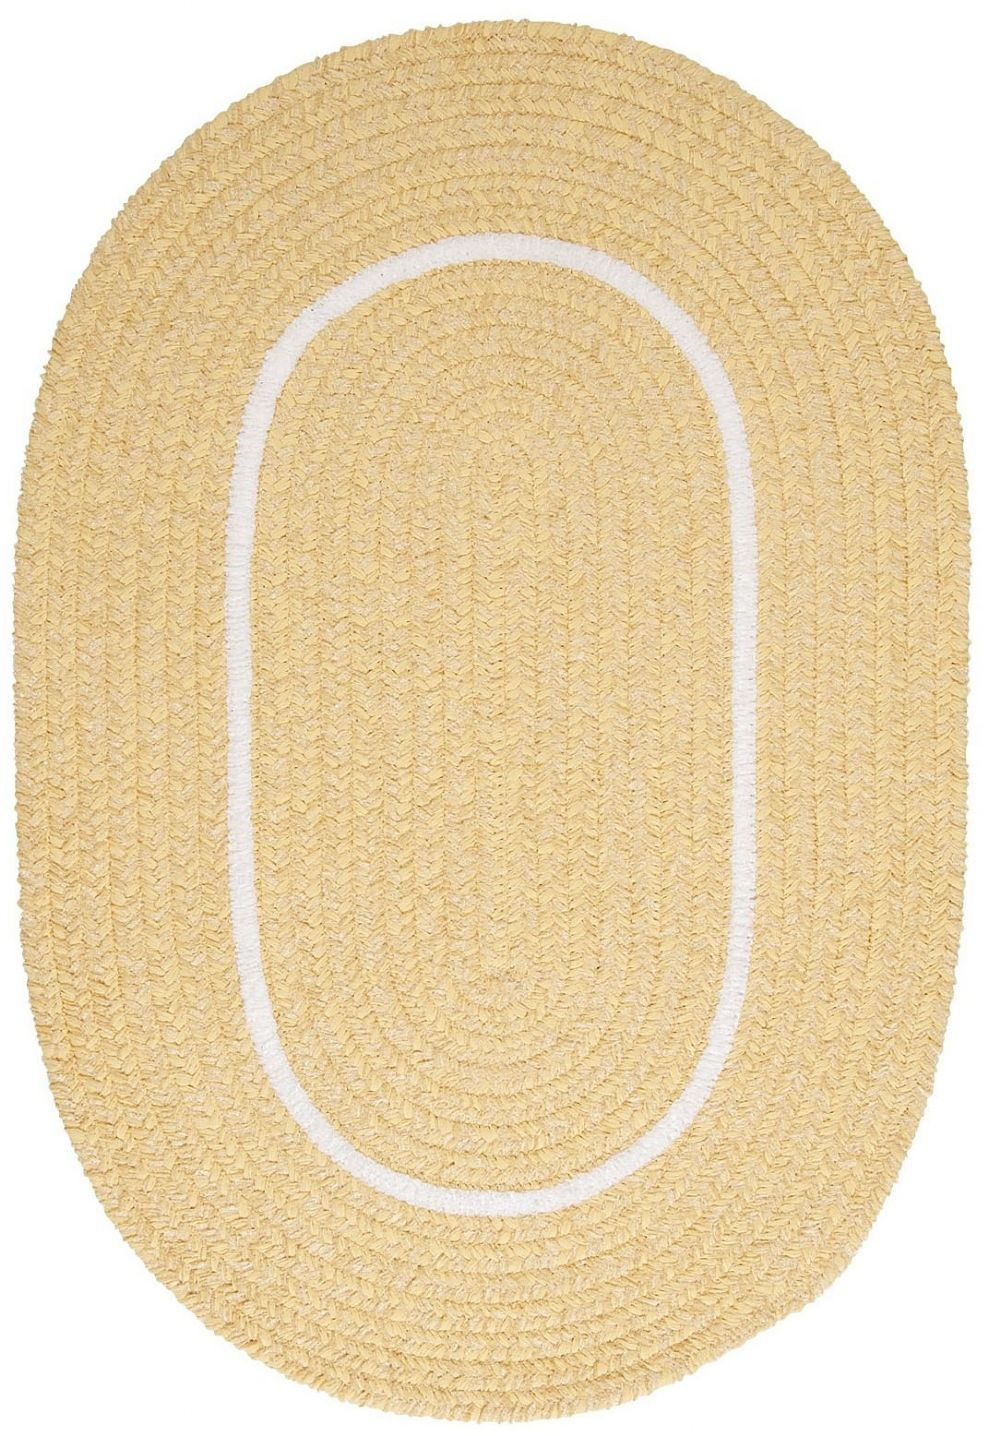 colonial mills silhouette braided area rug collection